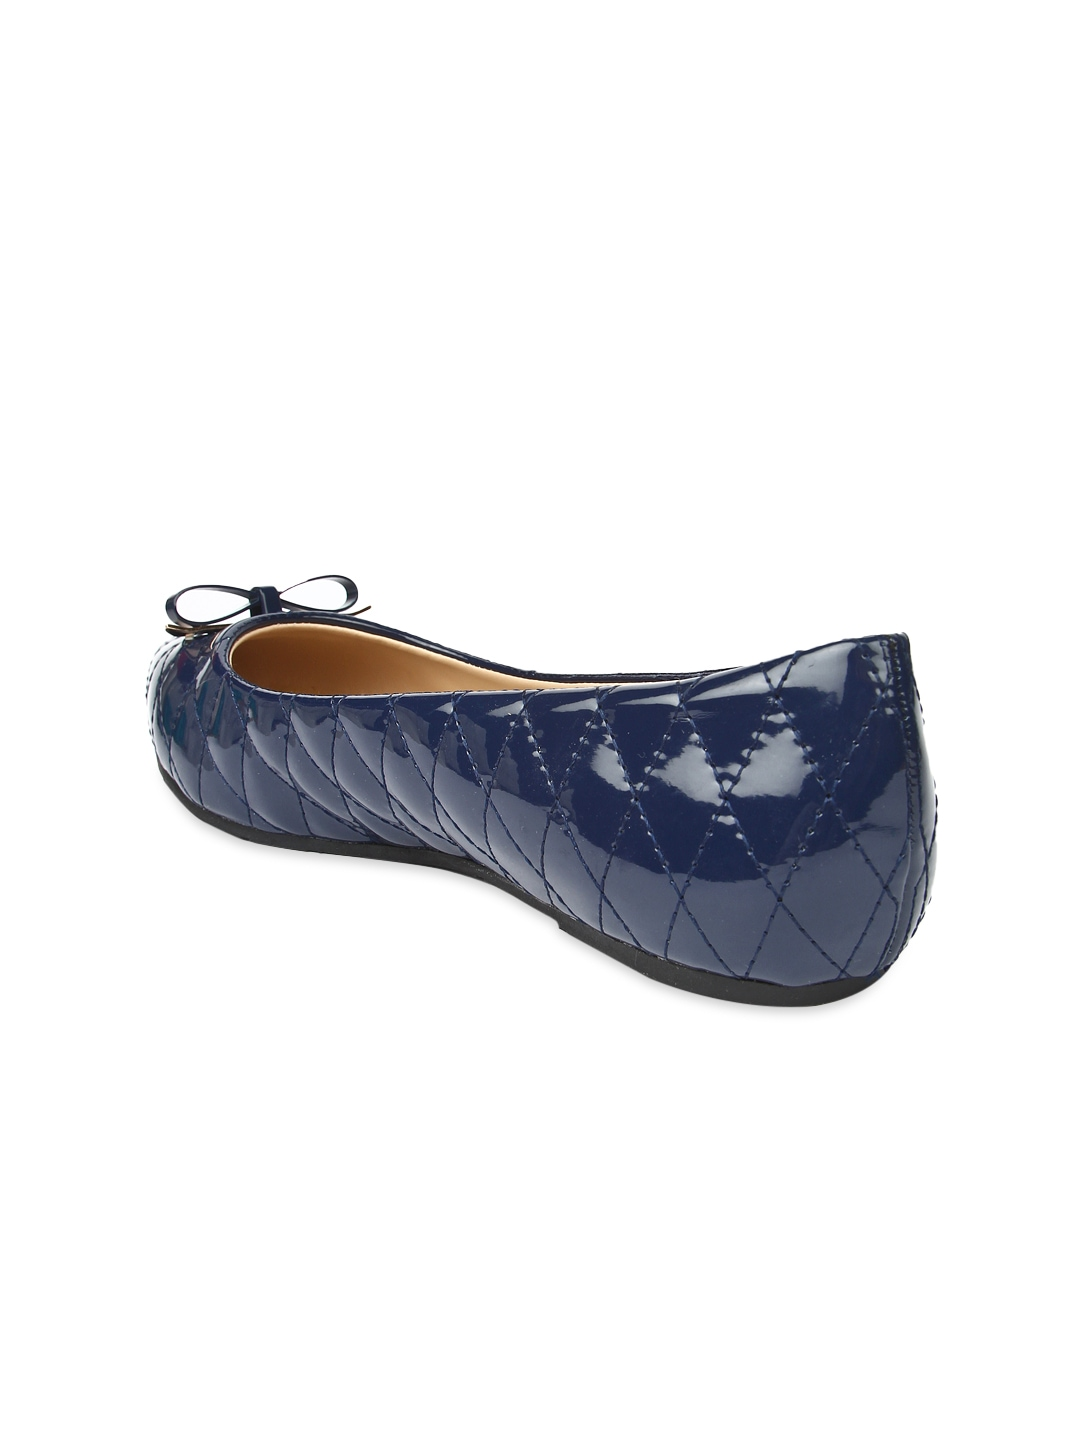 Excellent Pre-owned condition. Old Navy pointed ballet flat shoes size 6 M. All materials are man made. Furry Velvet detail finish on the toes (Navy blue) sides are black.